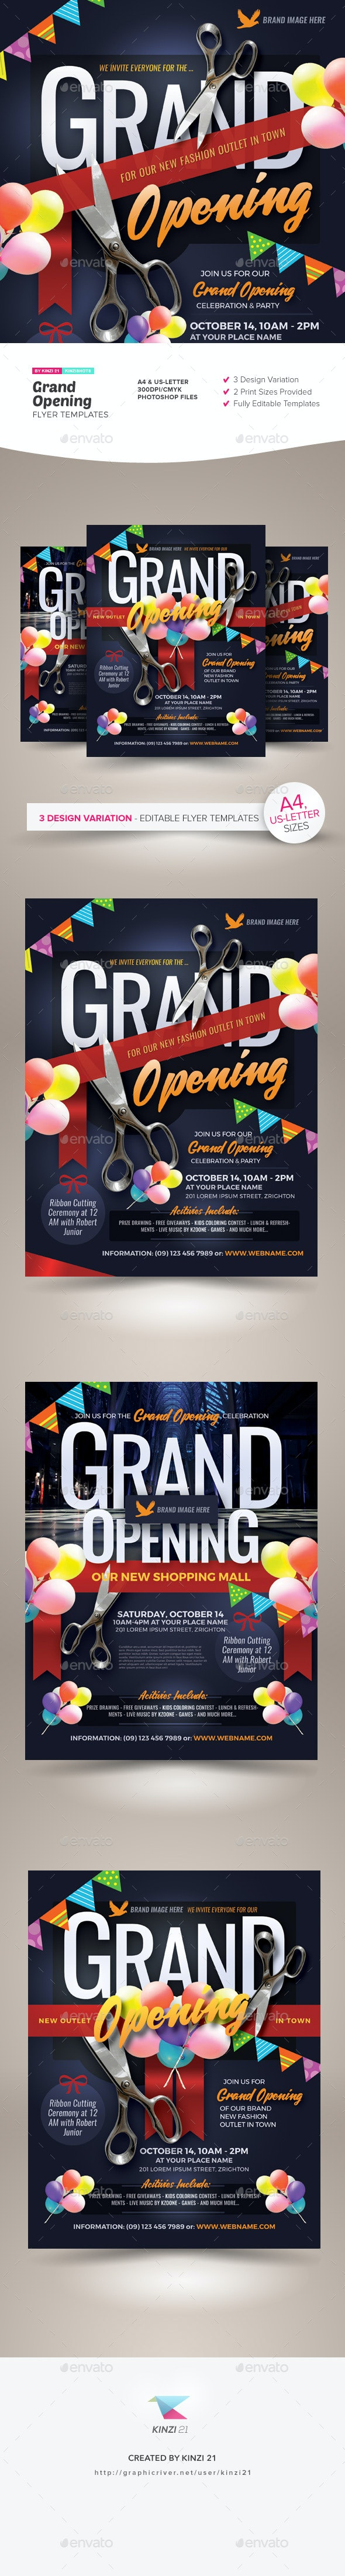 Grand Opening Flyer Templates - Miscellaneous Events